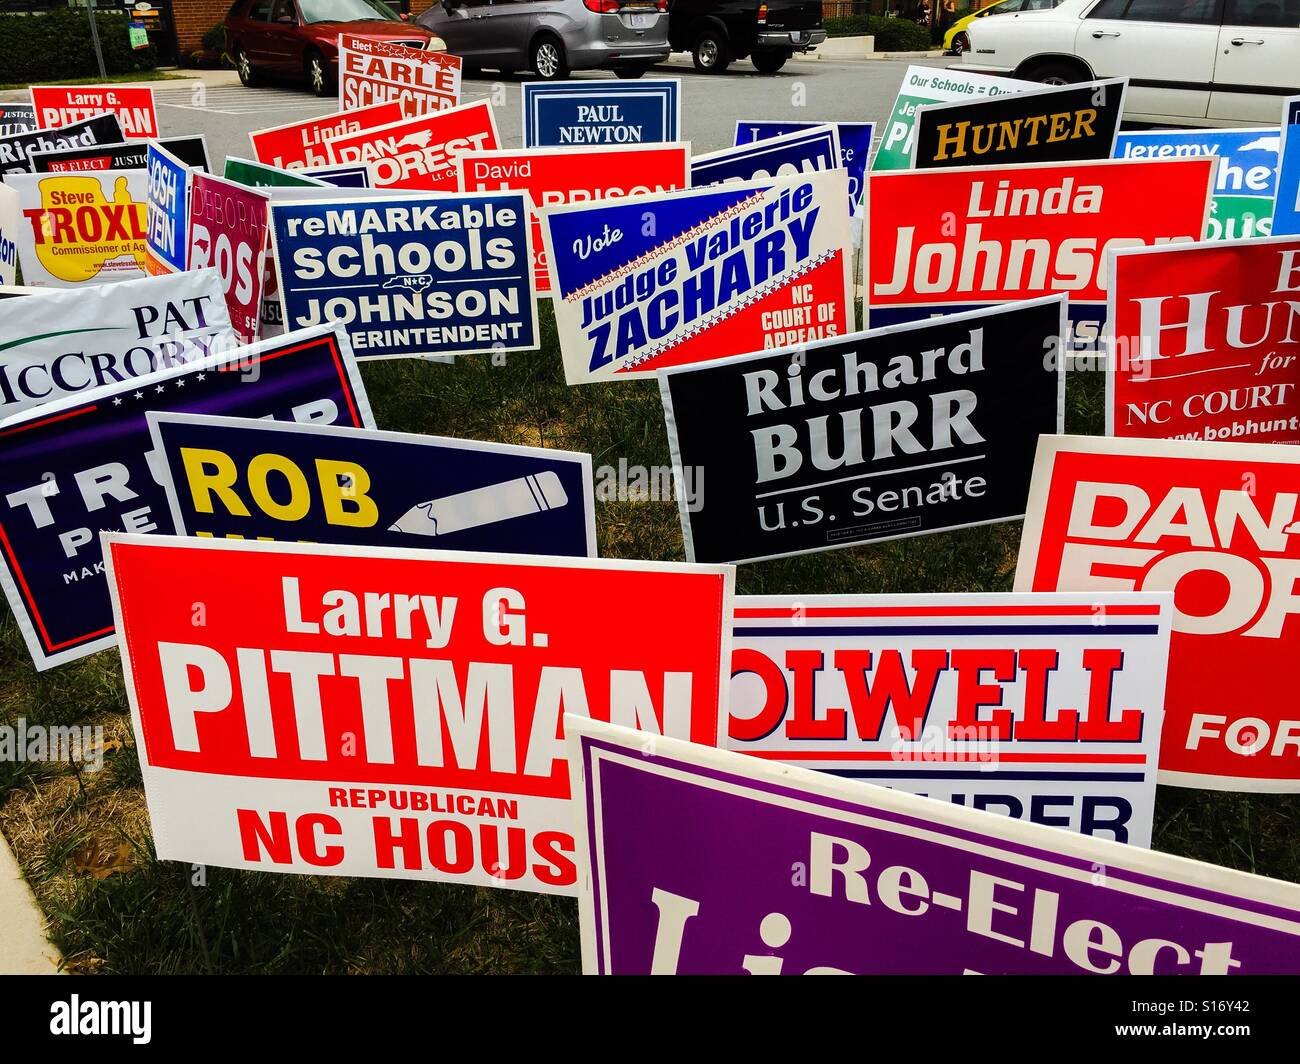 Voters were bombarded by political signs outside an election site in North Carolina. - Stock Image